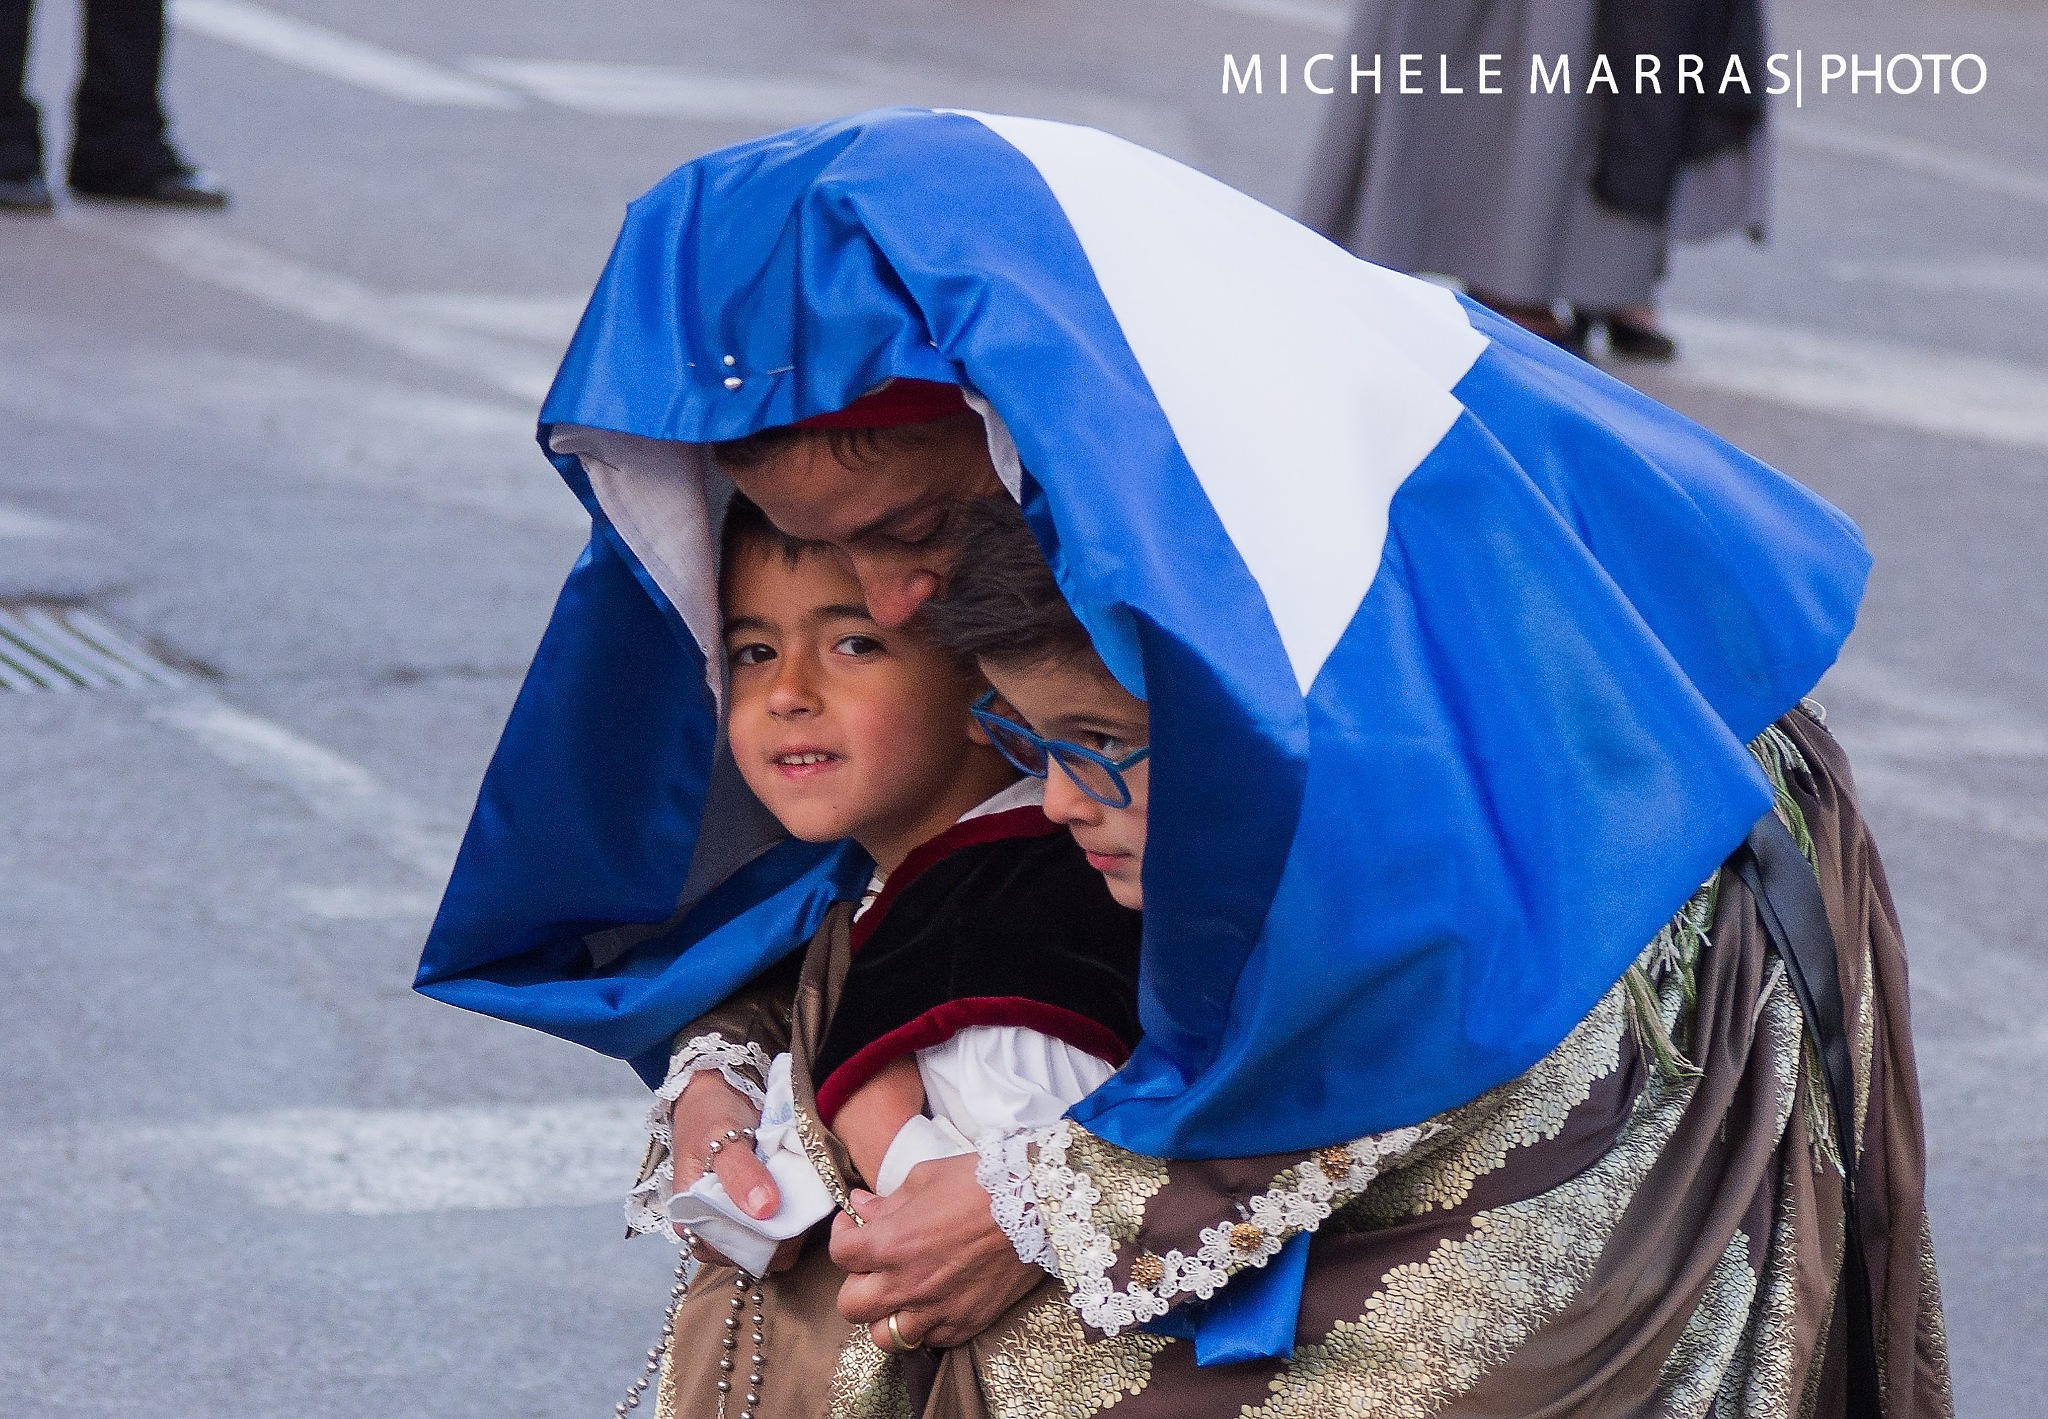 Mamma Chioccia by Michele Pinna Marras